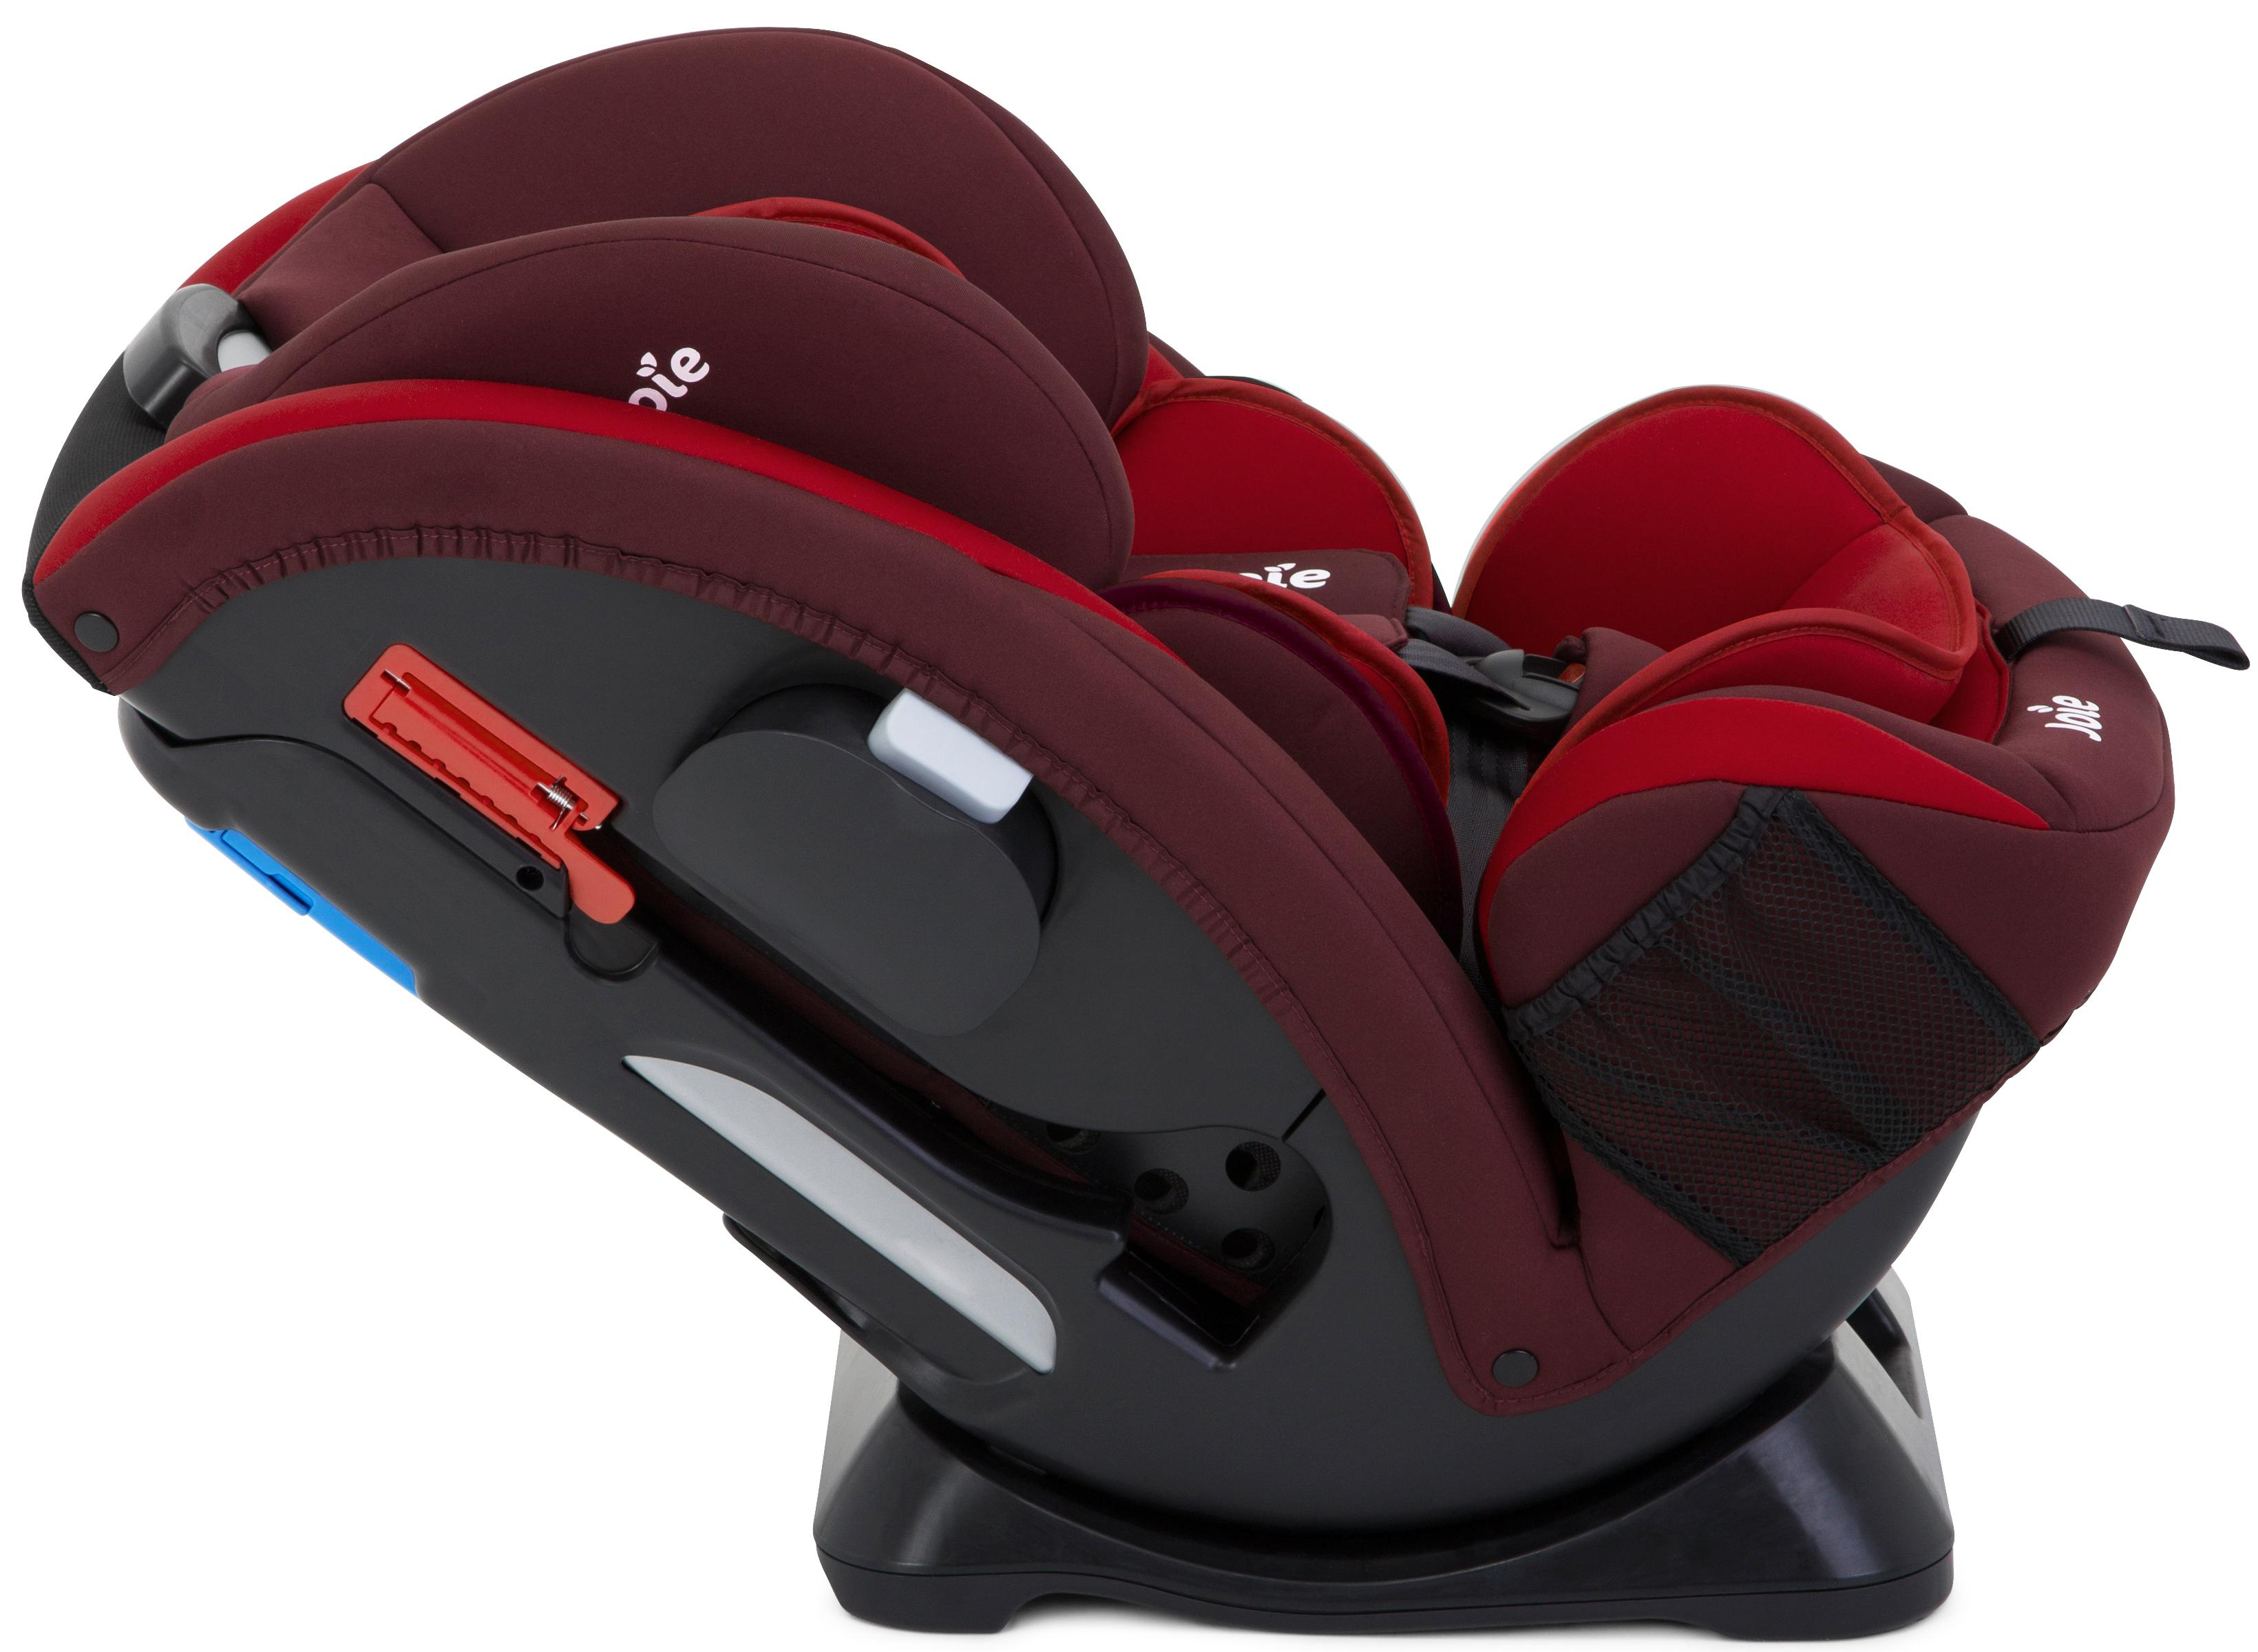 Joie Every Stages Baby Child Safety Car Seat Group 0 123 36kg 12Yrs